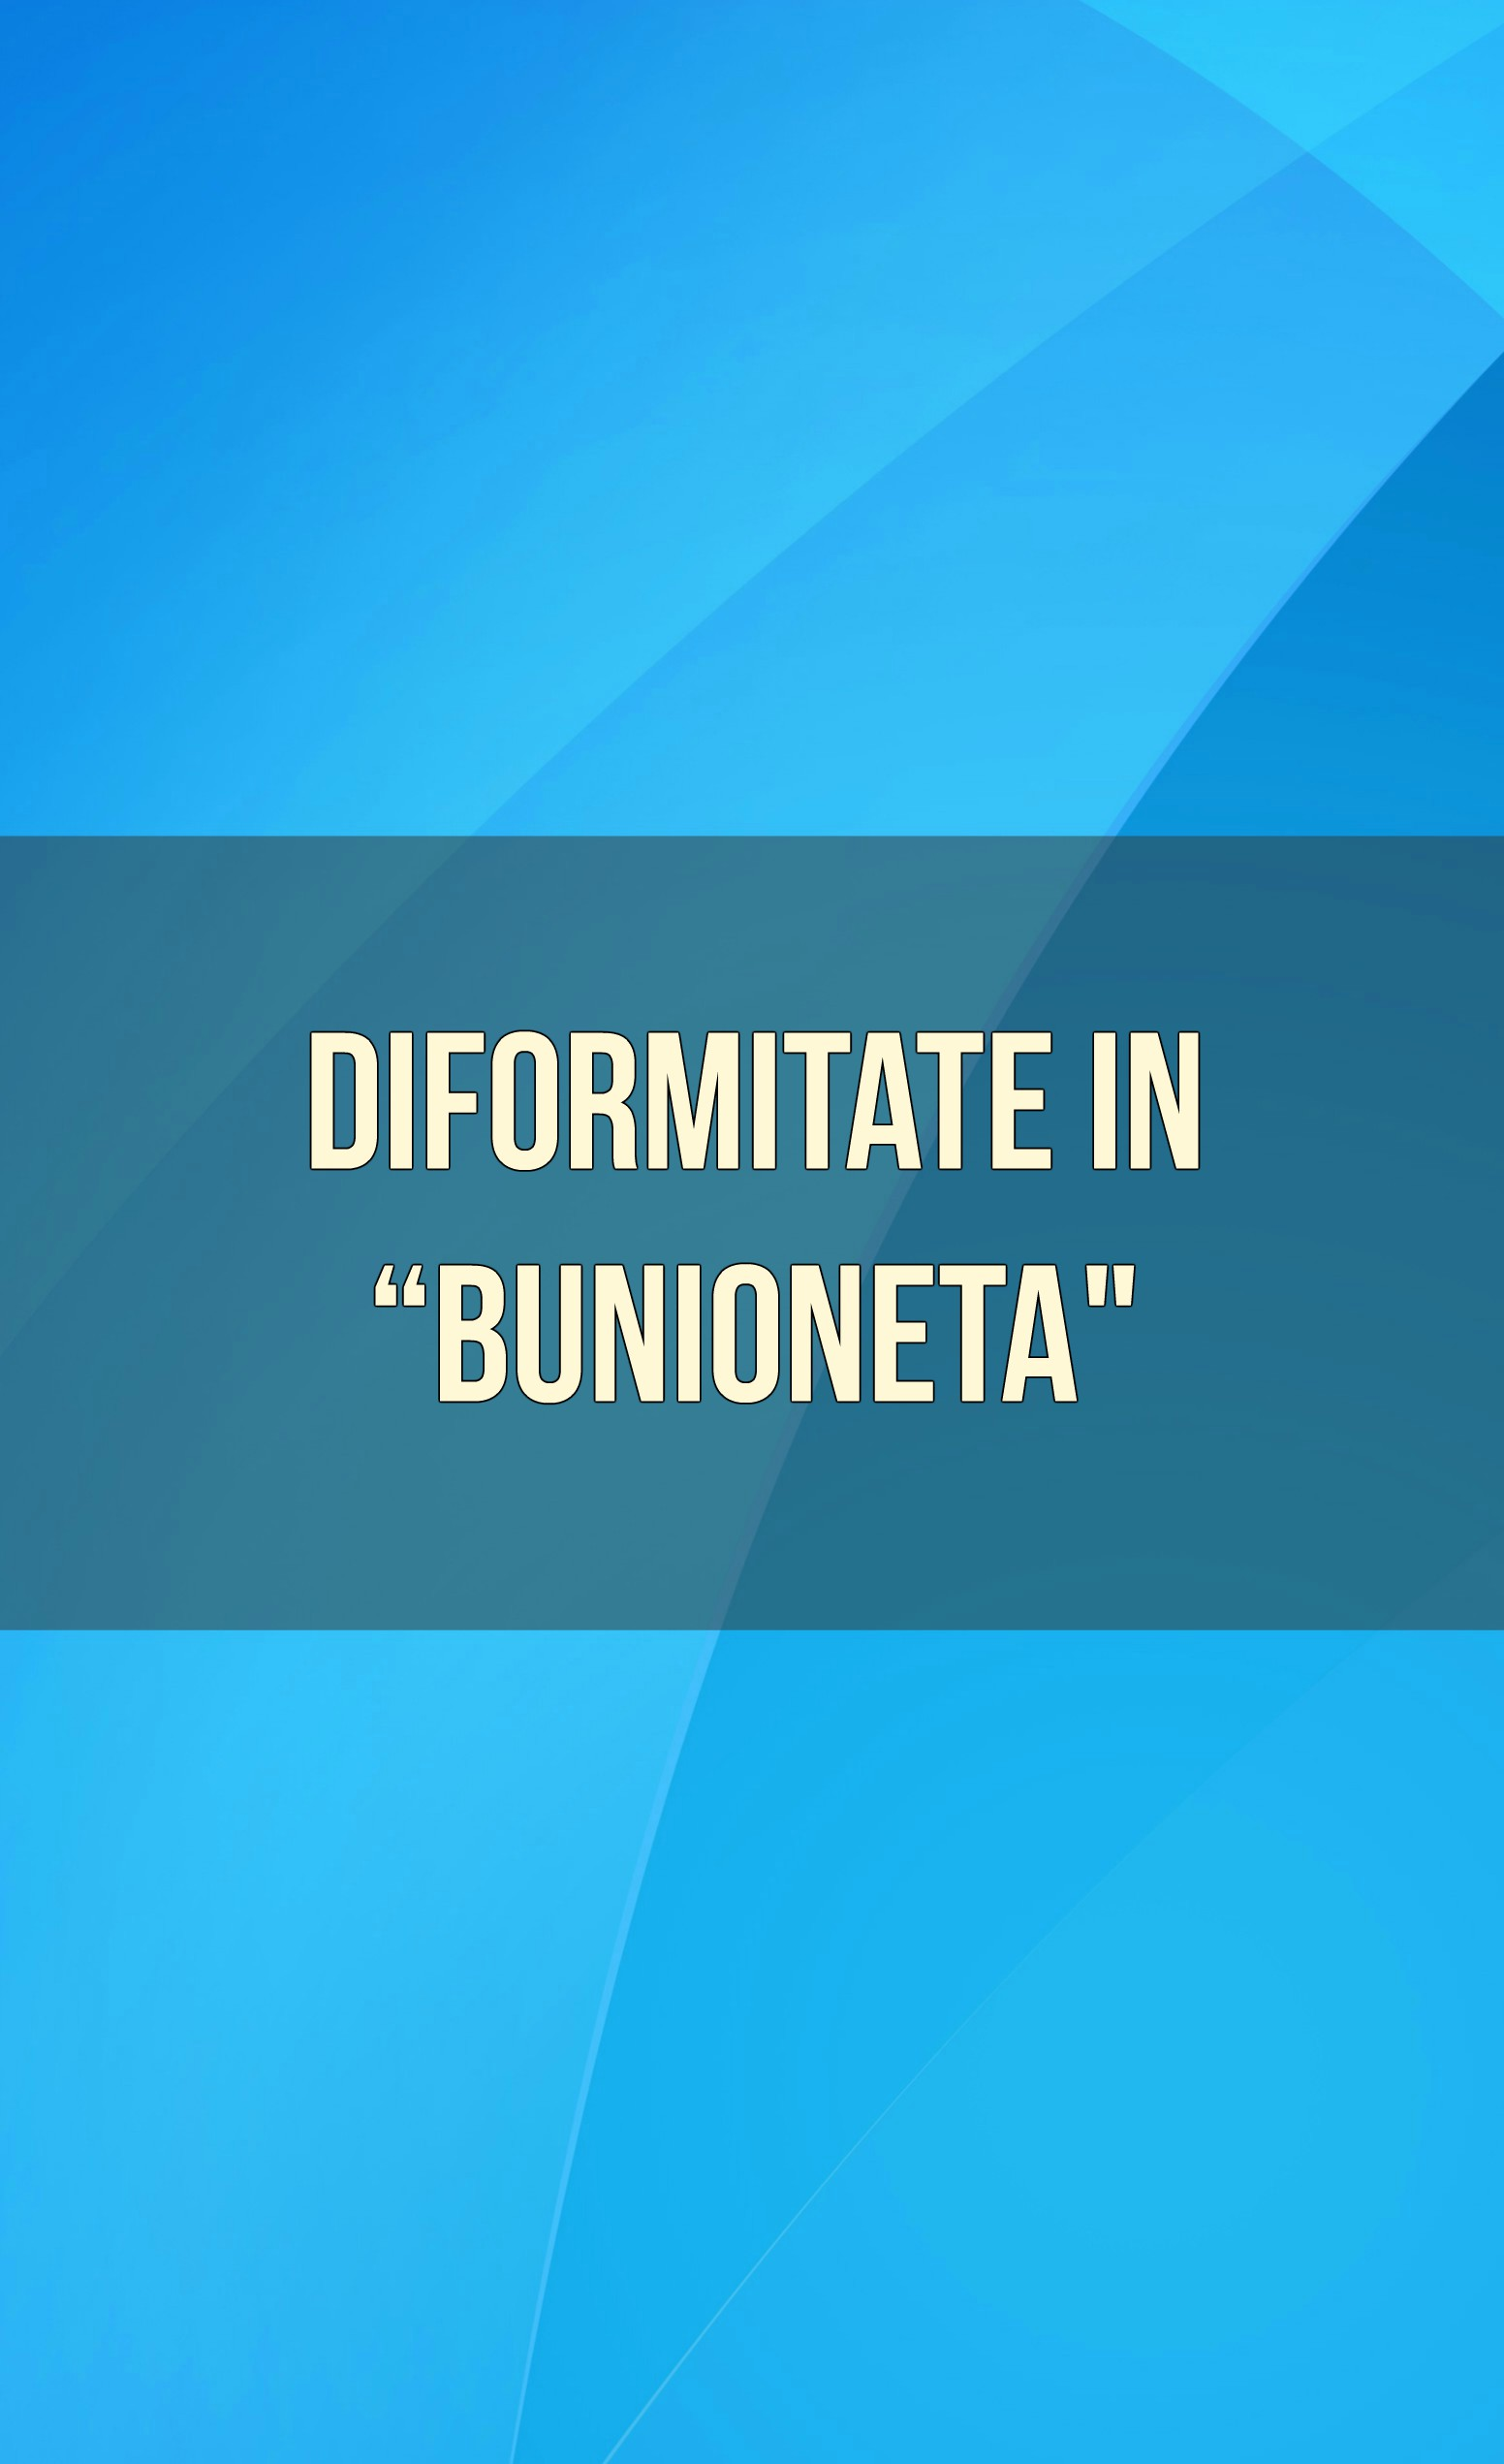 Diformitate in bunioneta